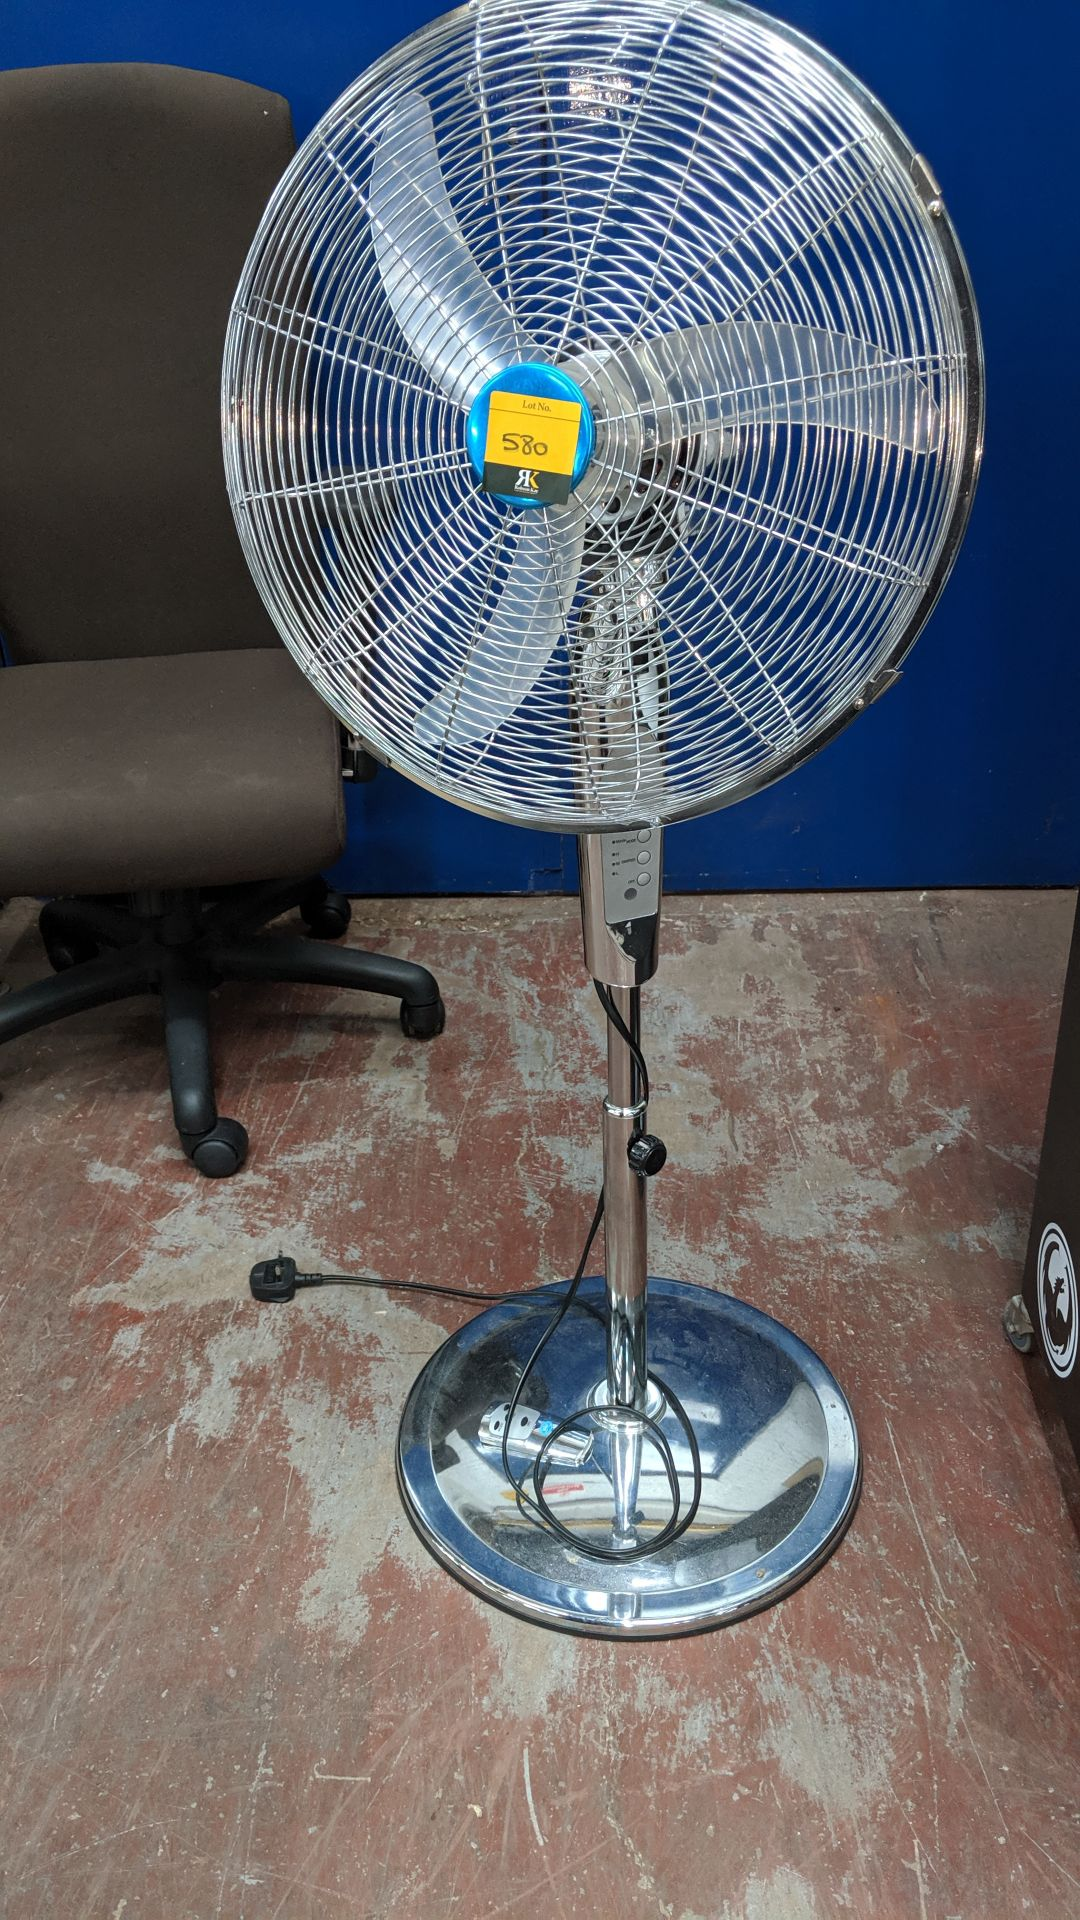 Lot 580 - Chrome finish floor standing pedestal fan with remote control. Lots 560 - 580 form the total